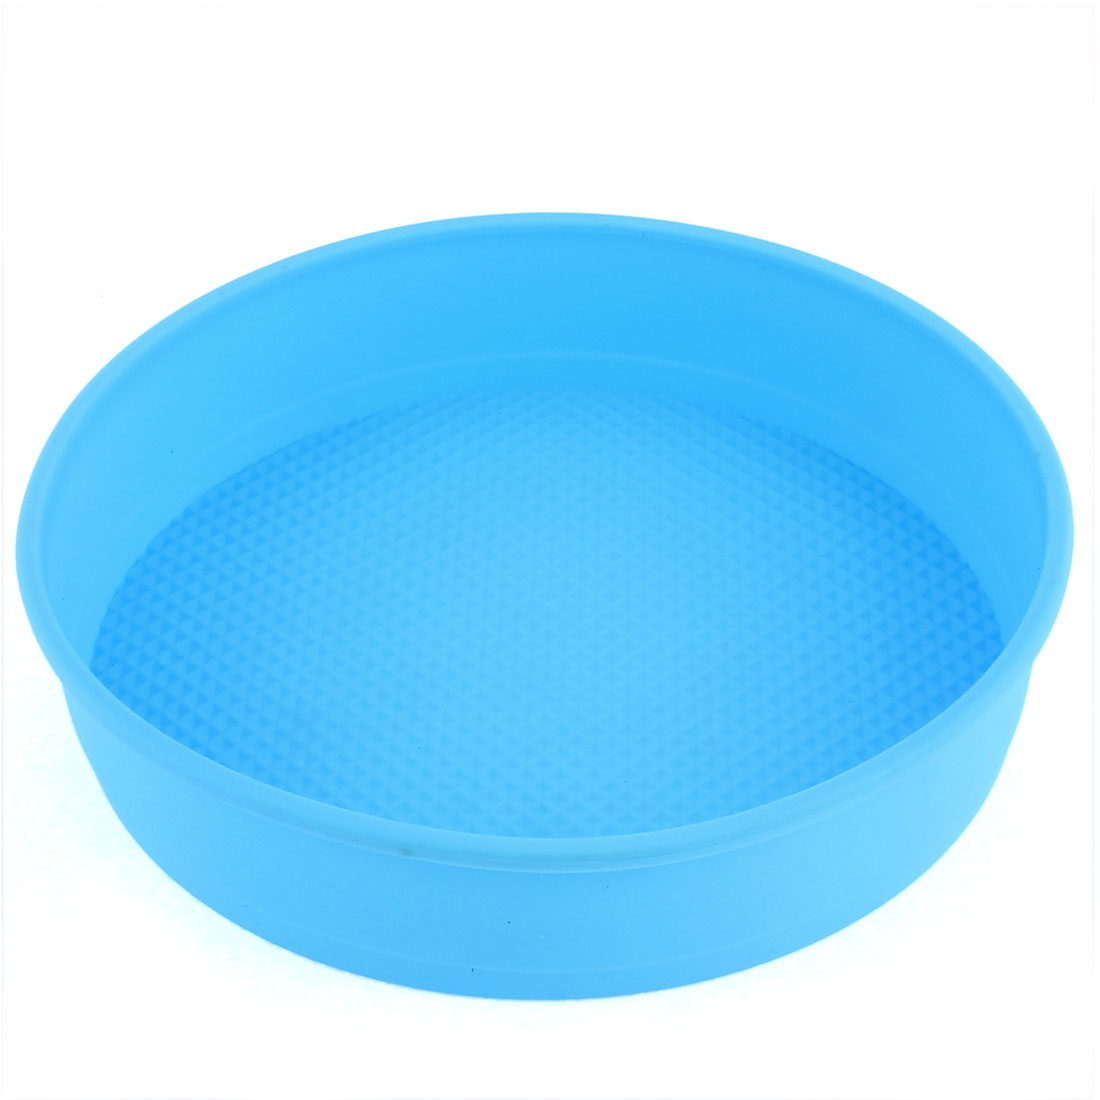 "Silicone Round Shaped Cake Baking Mold Pan Blue 7.5"" Dia"